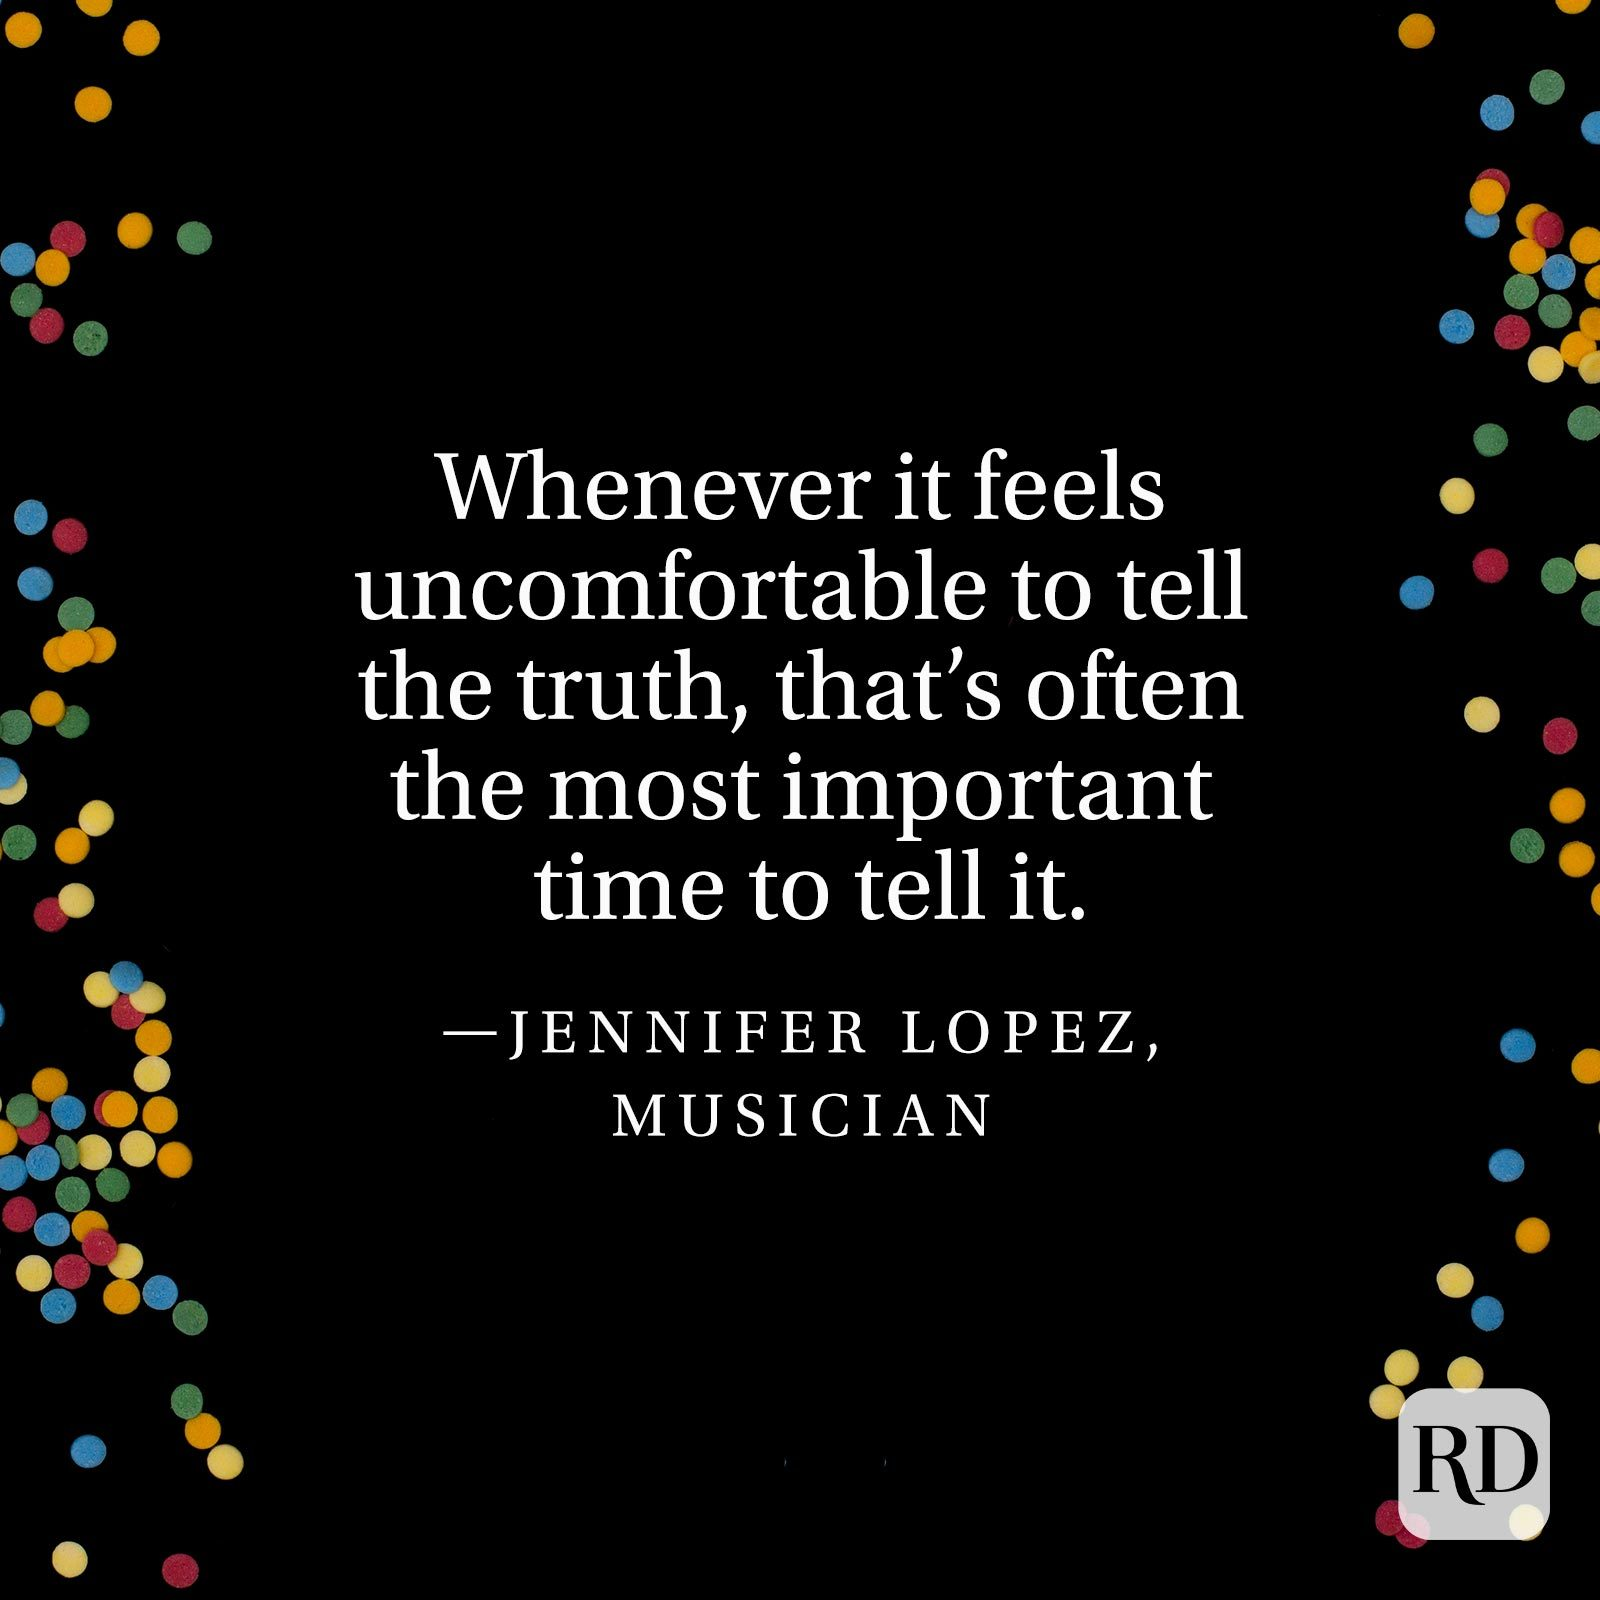 """Whenever it feels uncomfortable to tell the truth, that's often the most important time to tell it."" —Jennifer Lopez, musician."